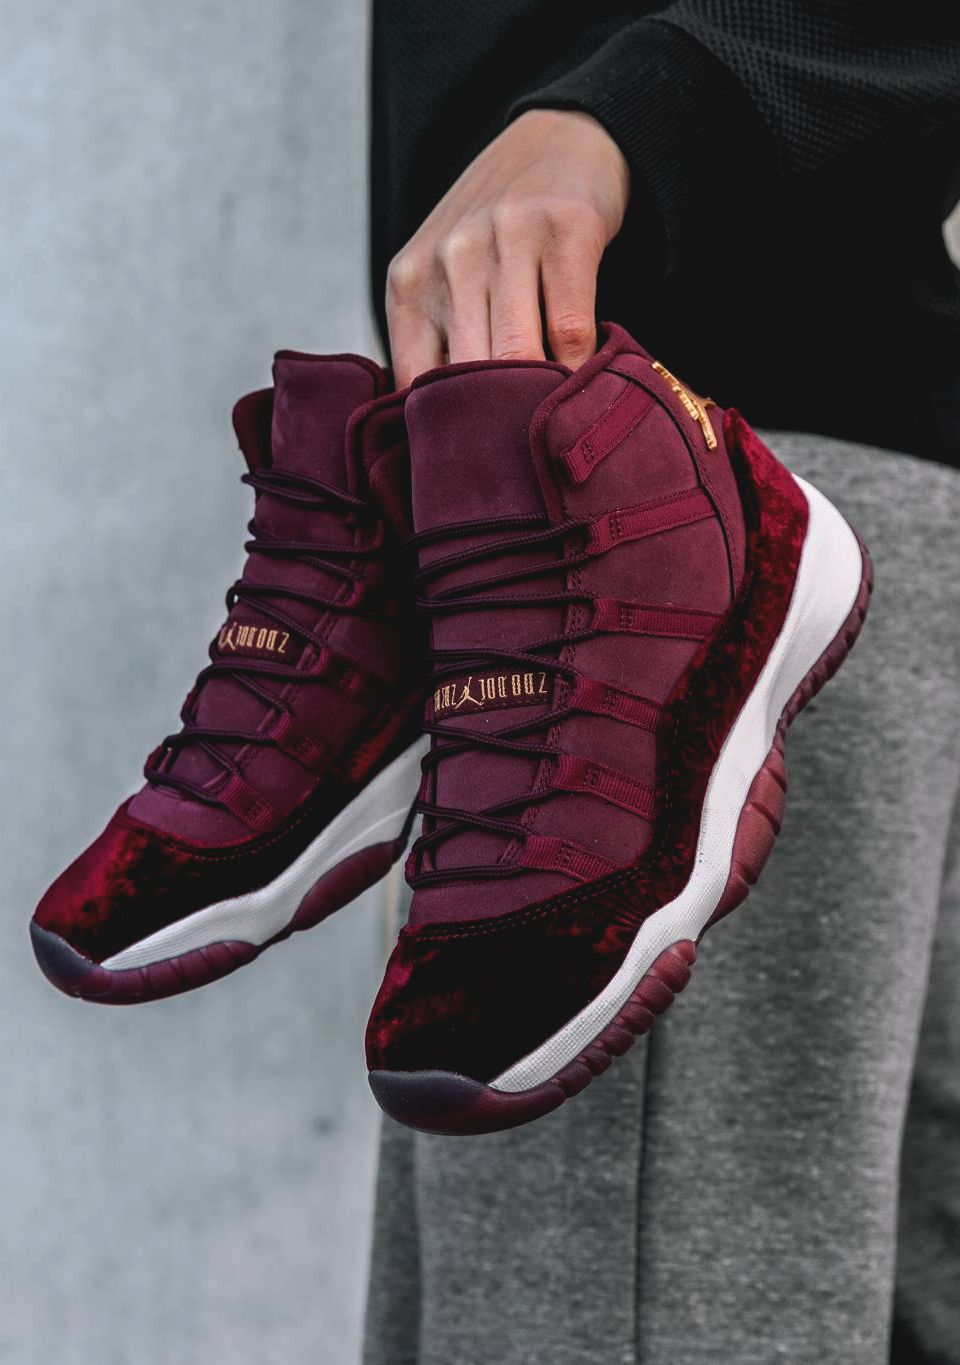 online retailer f2524 d45e9 Air Jordan 11 Retro RL GG Heiress  Red Velvet  (via Overkill) - Tap the pin  if you love super heroes too! Cause guess what  you will LOVE these super  hero ...